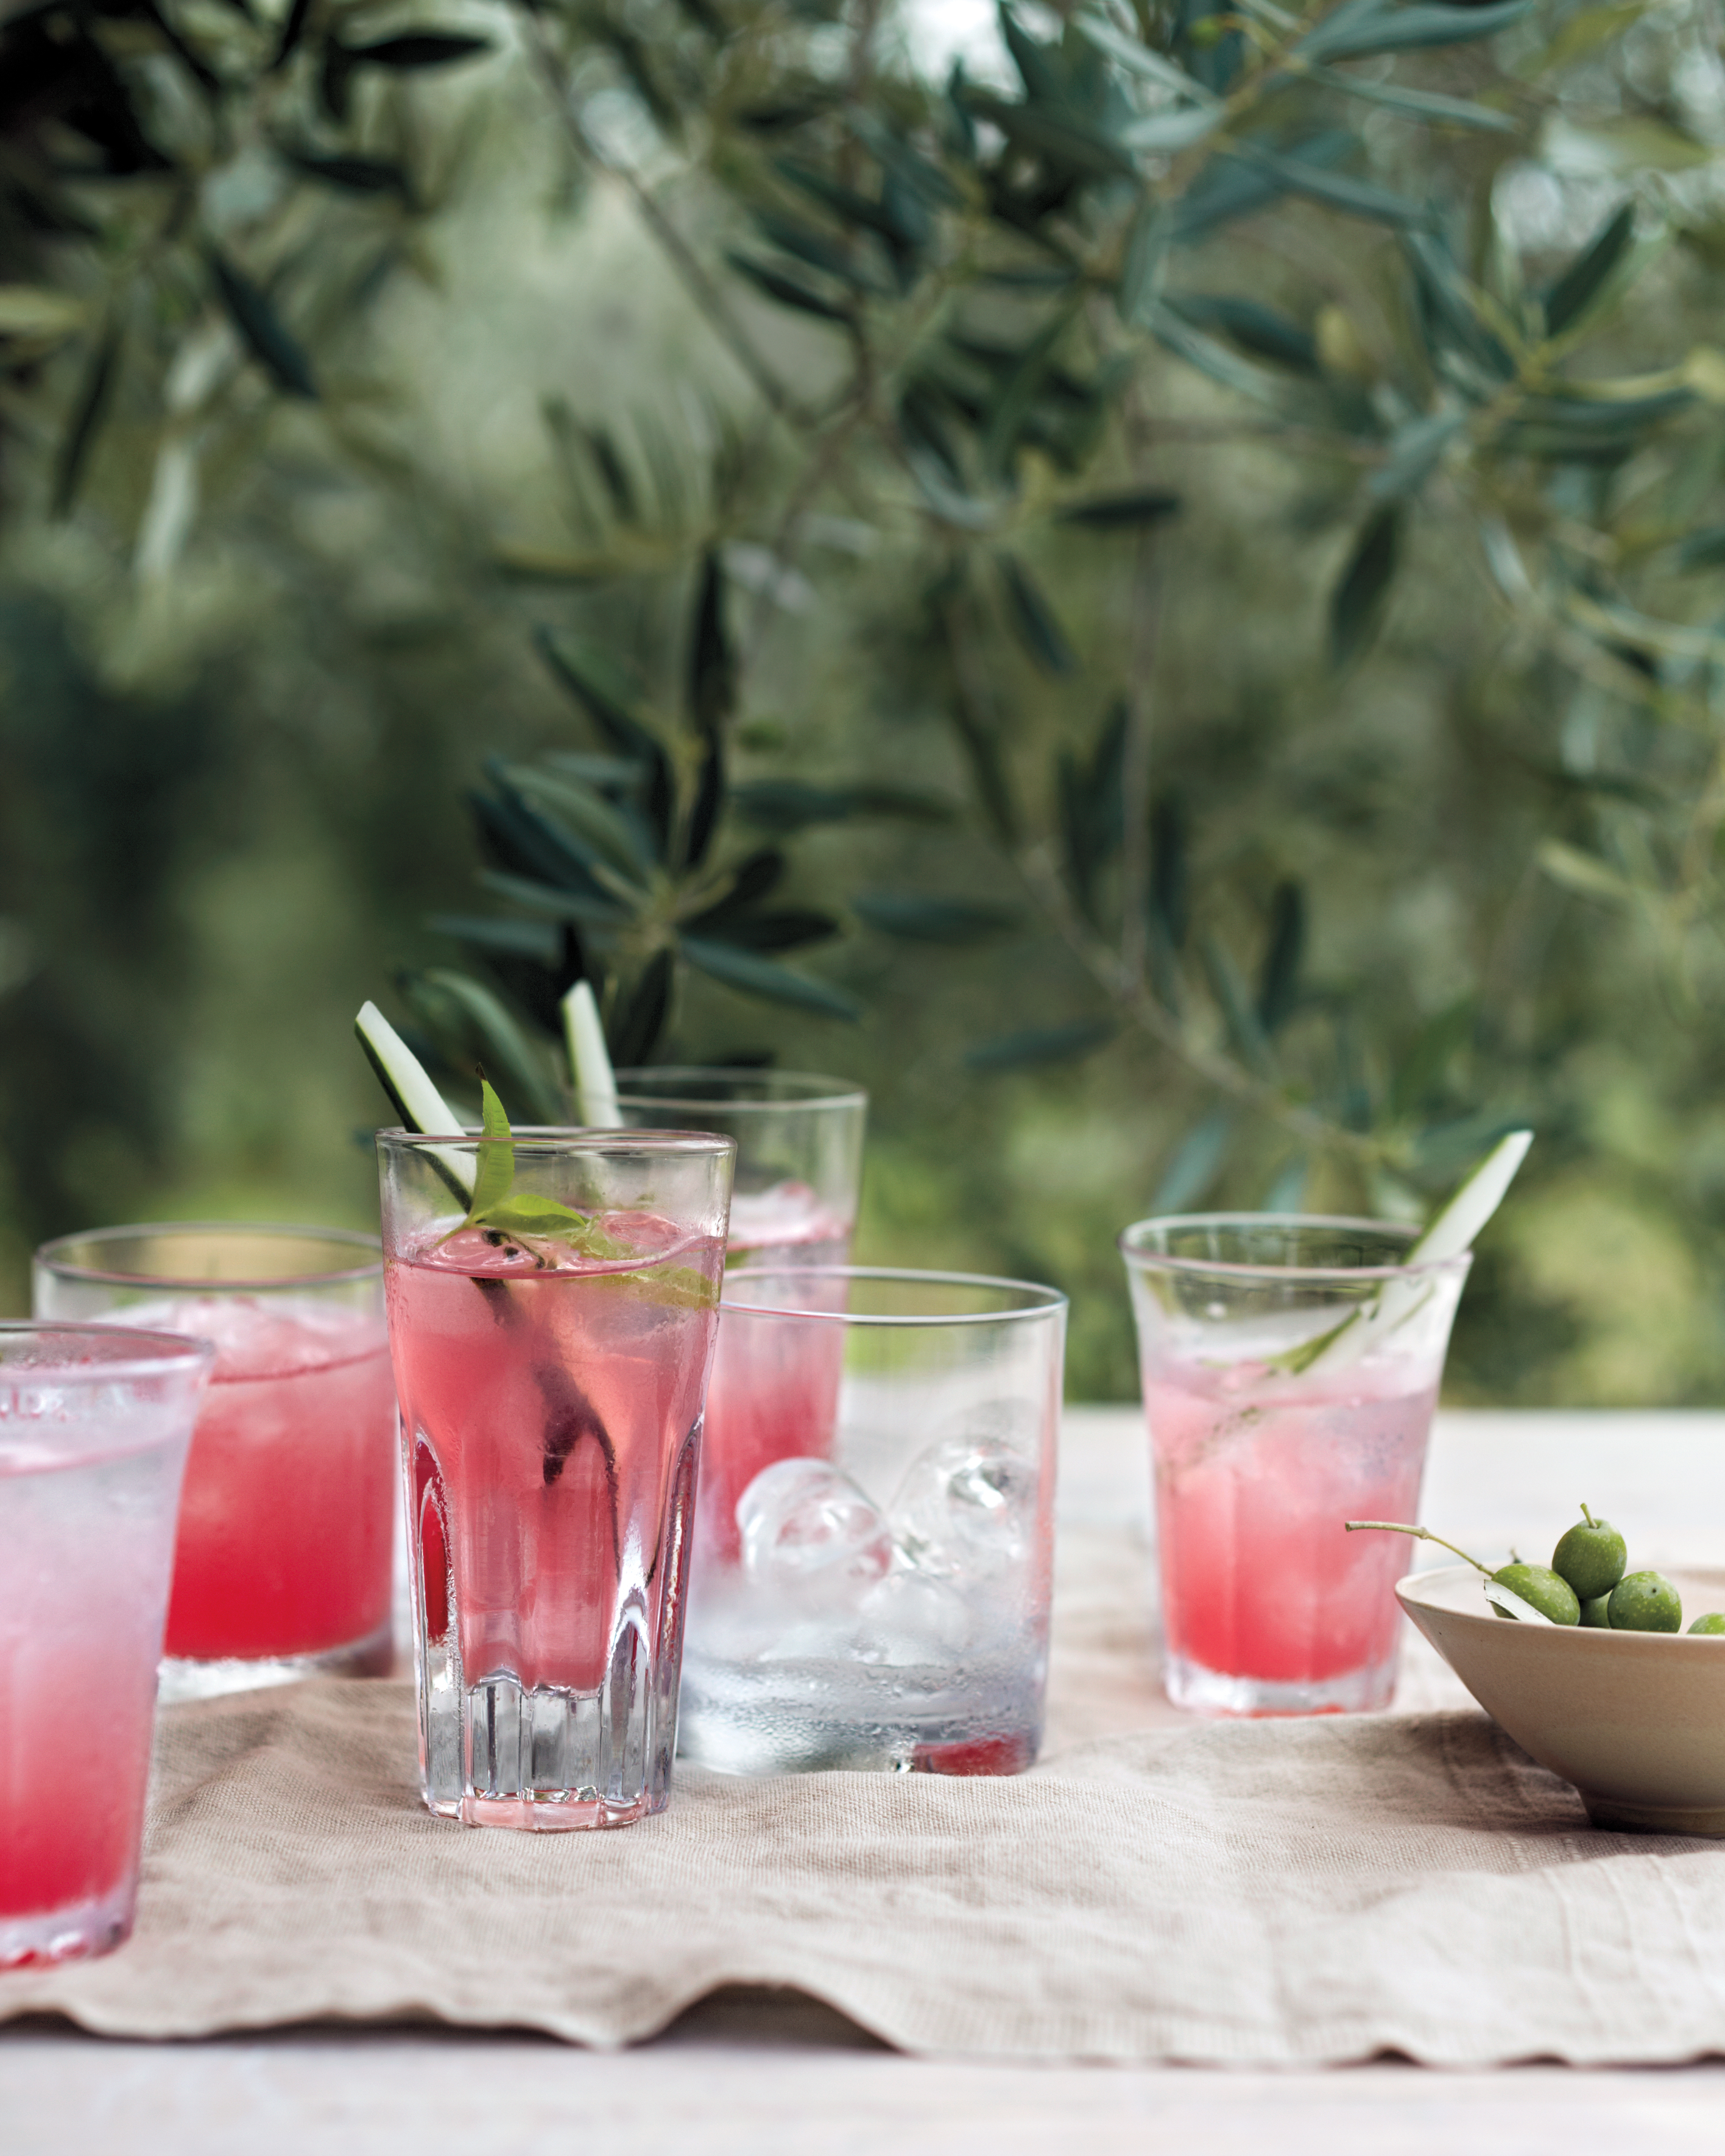 Watermelon-Cucumber Coolers